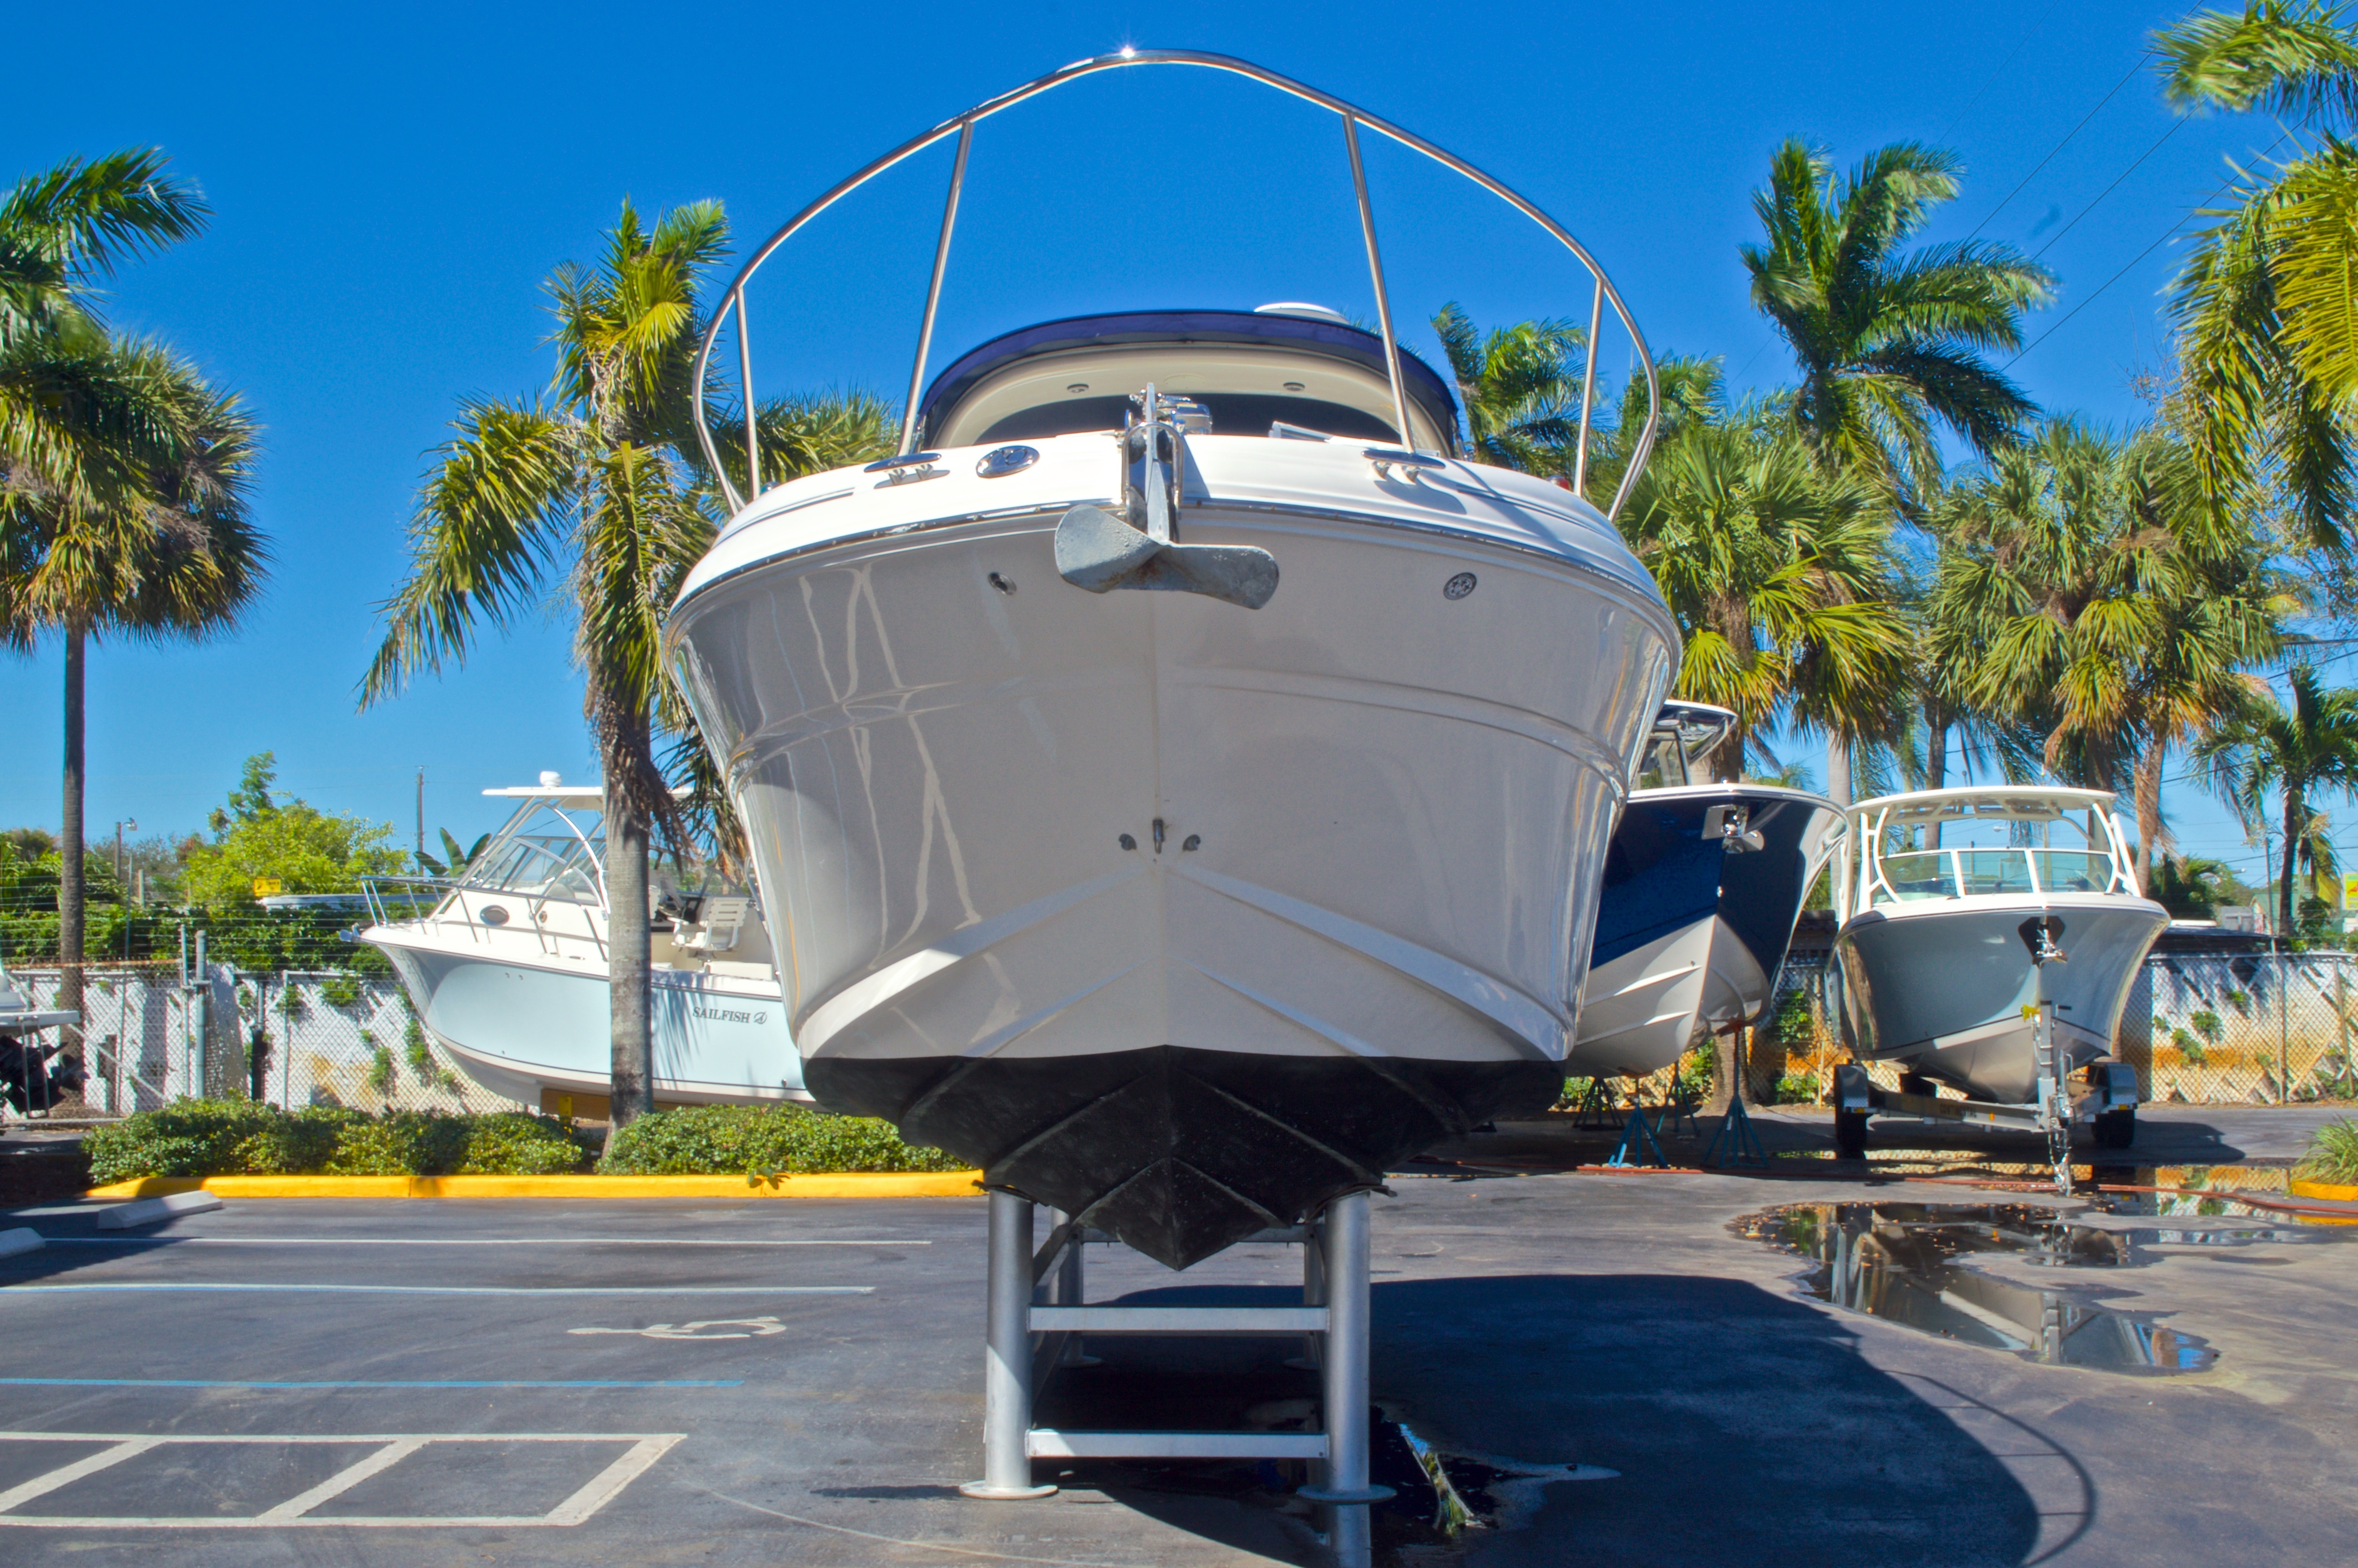 Thumbnail 13 for Used 2005 Sea Ray 280 Sundancer boat for sale in West Palm Beach, FL